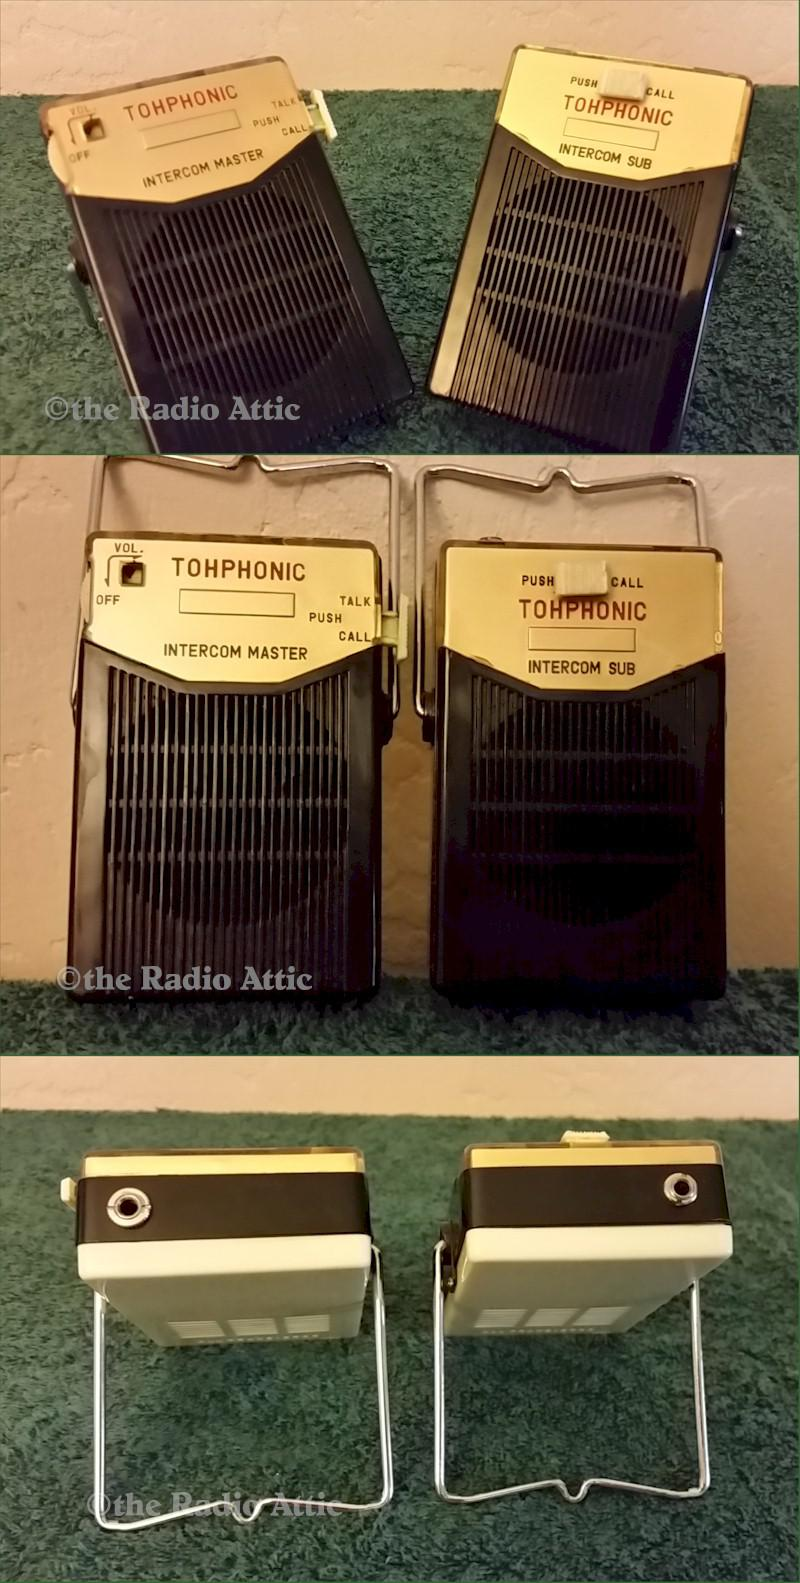 TohPhonic HP-2T Intercoms (1962)